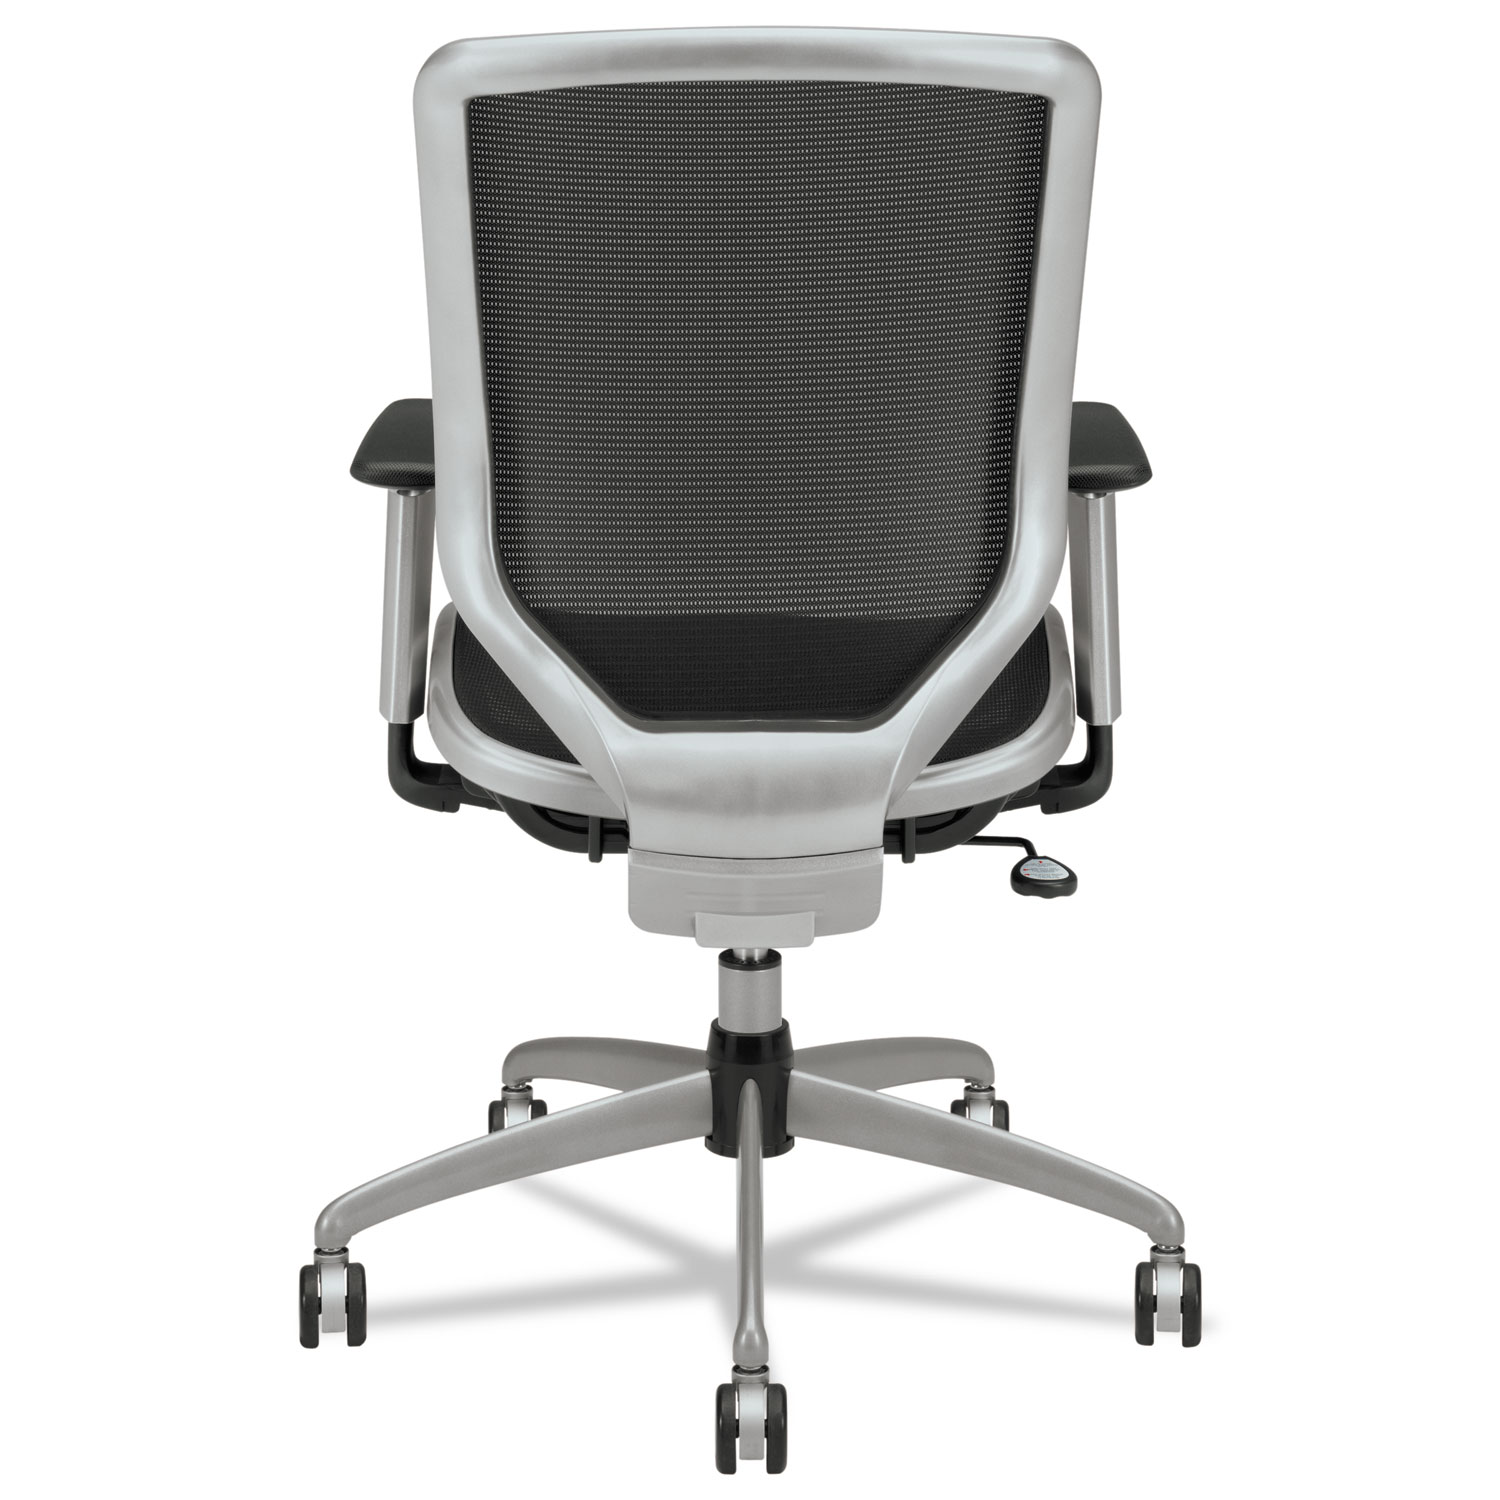 Boda Series HighBack Work Chair By HON HONMHMSTC - Work chair